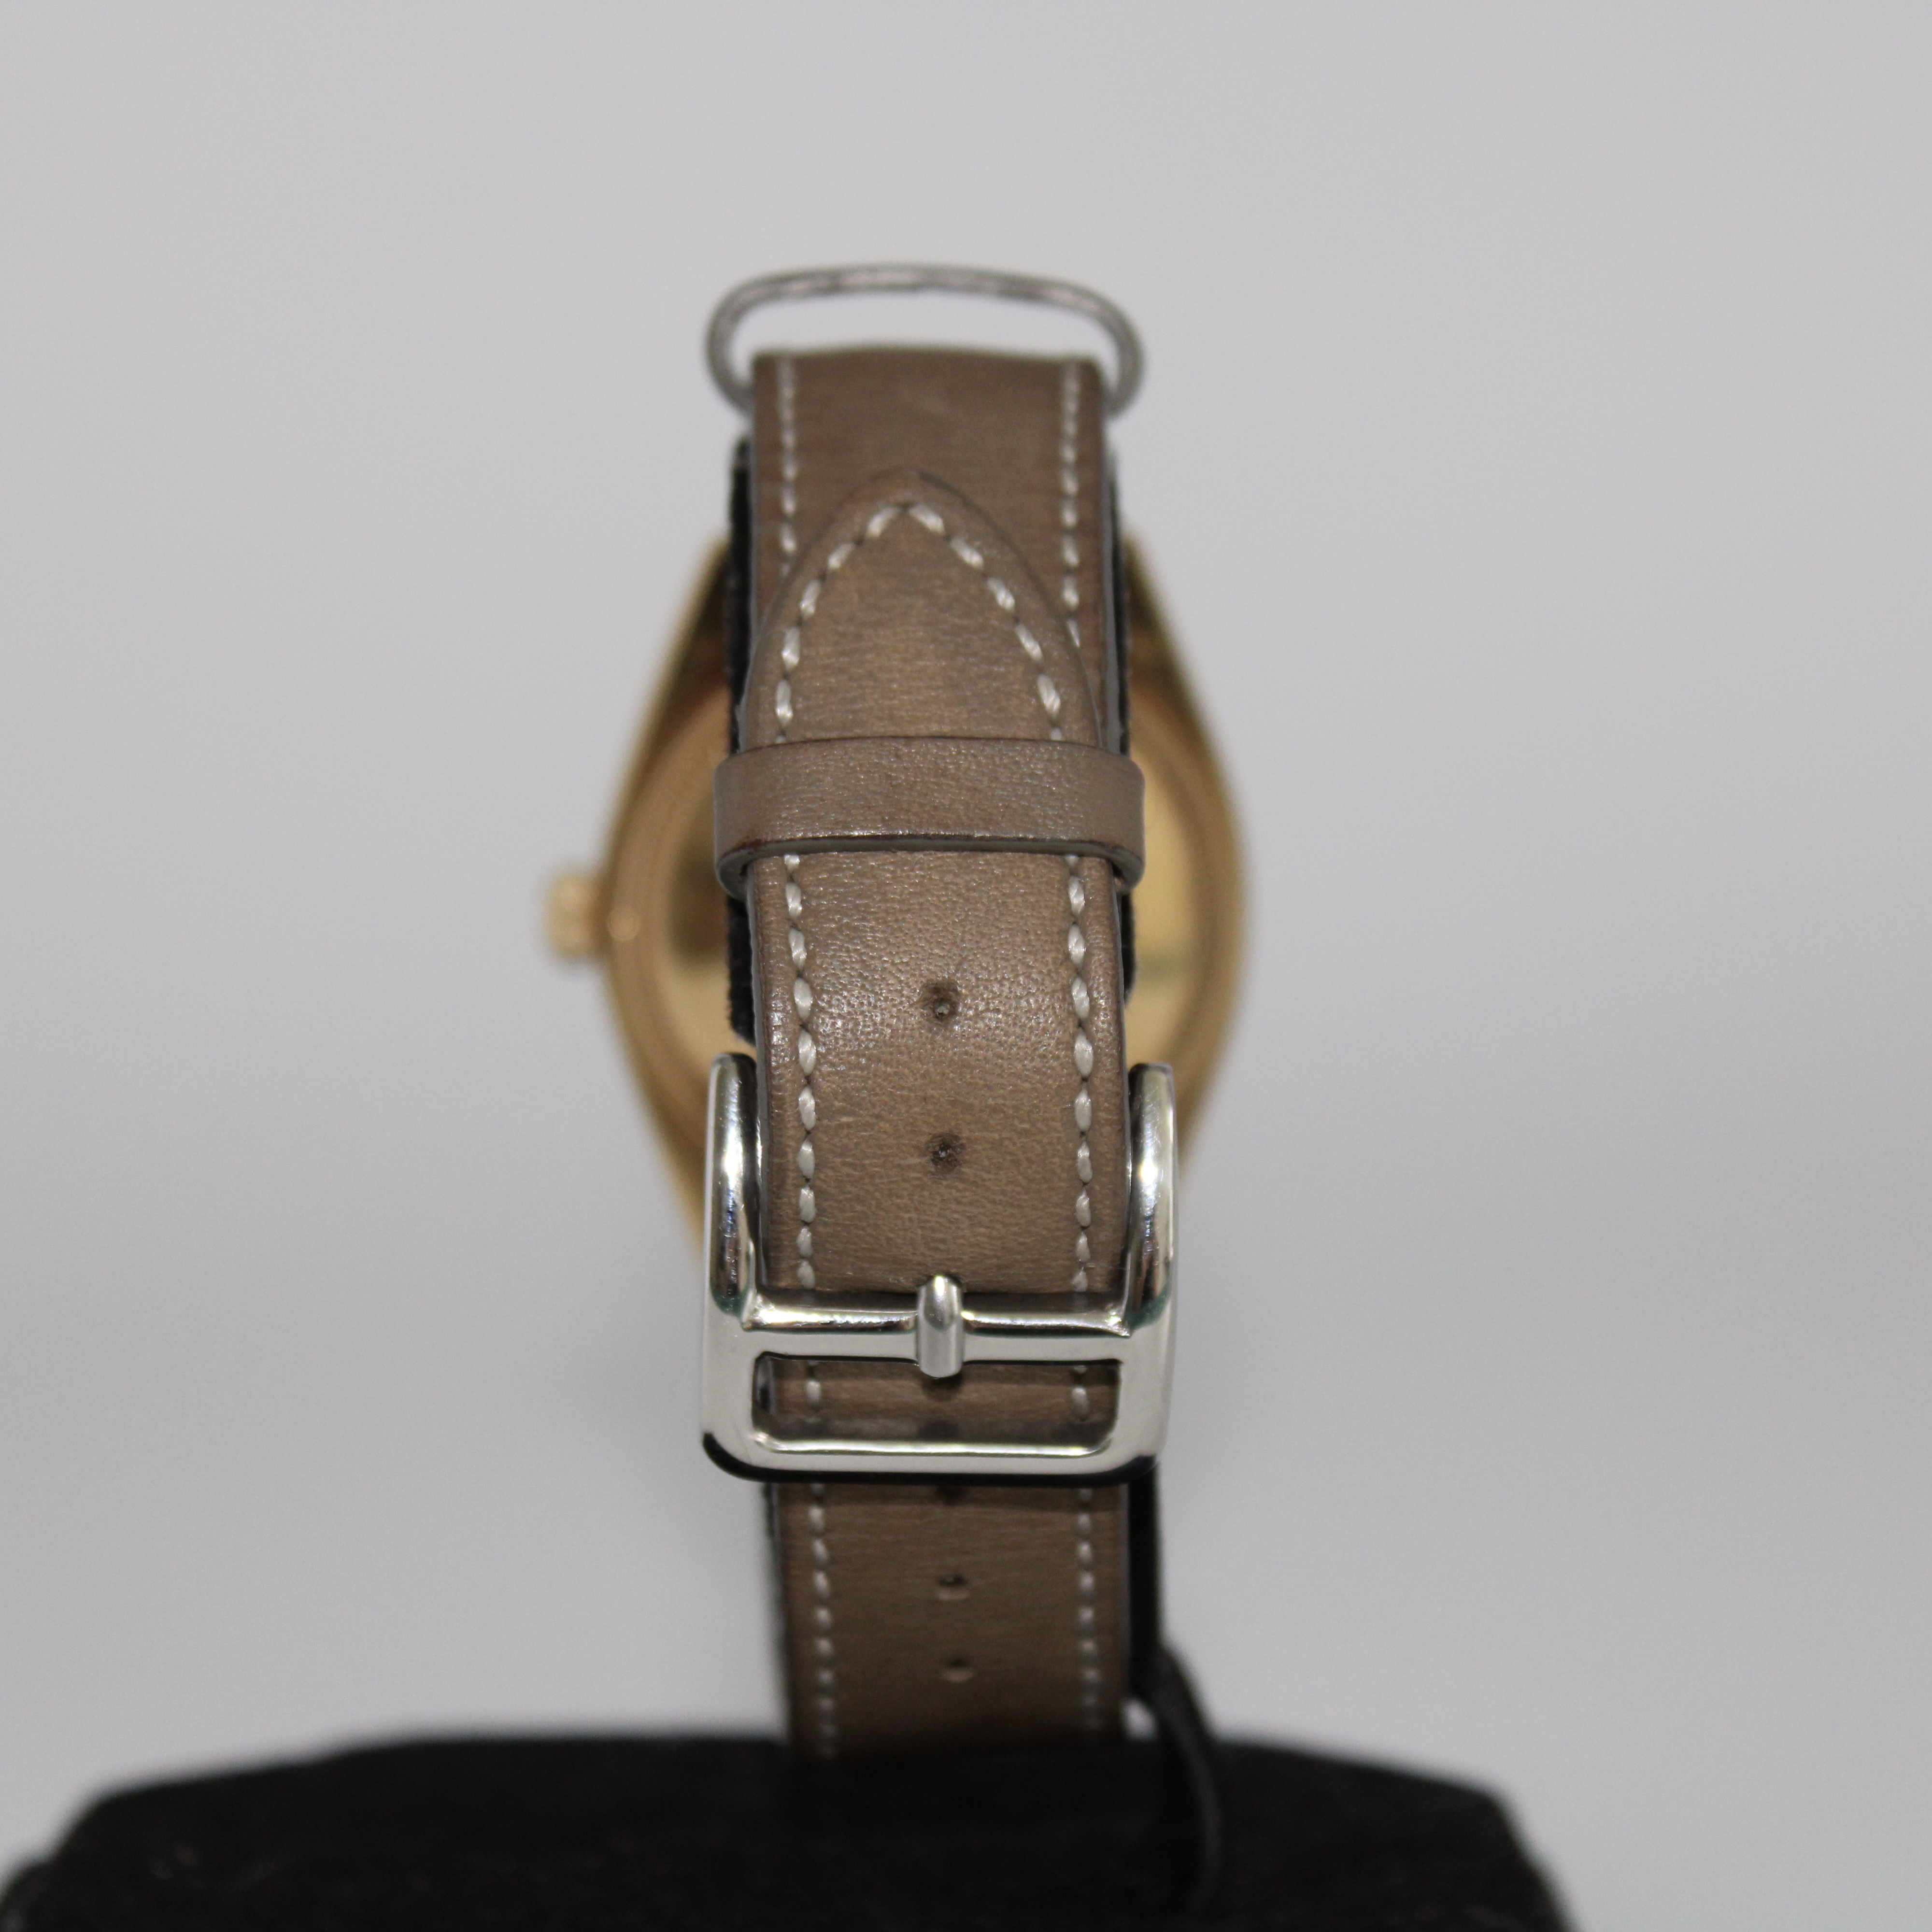 Rolex Oyster Date 18ct Ref 1500 - Image 4 of 6